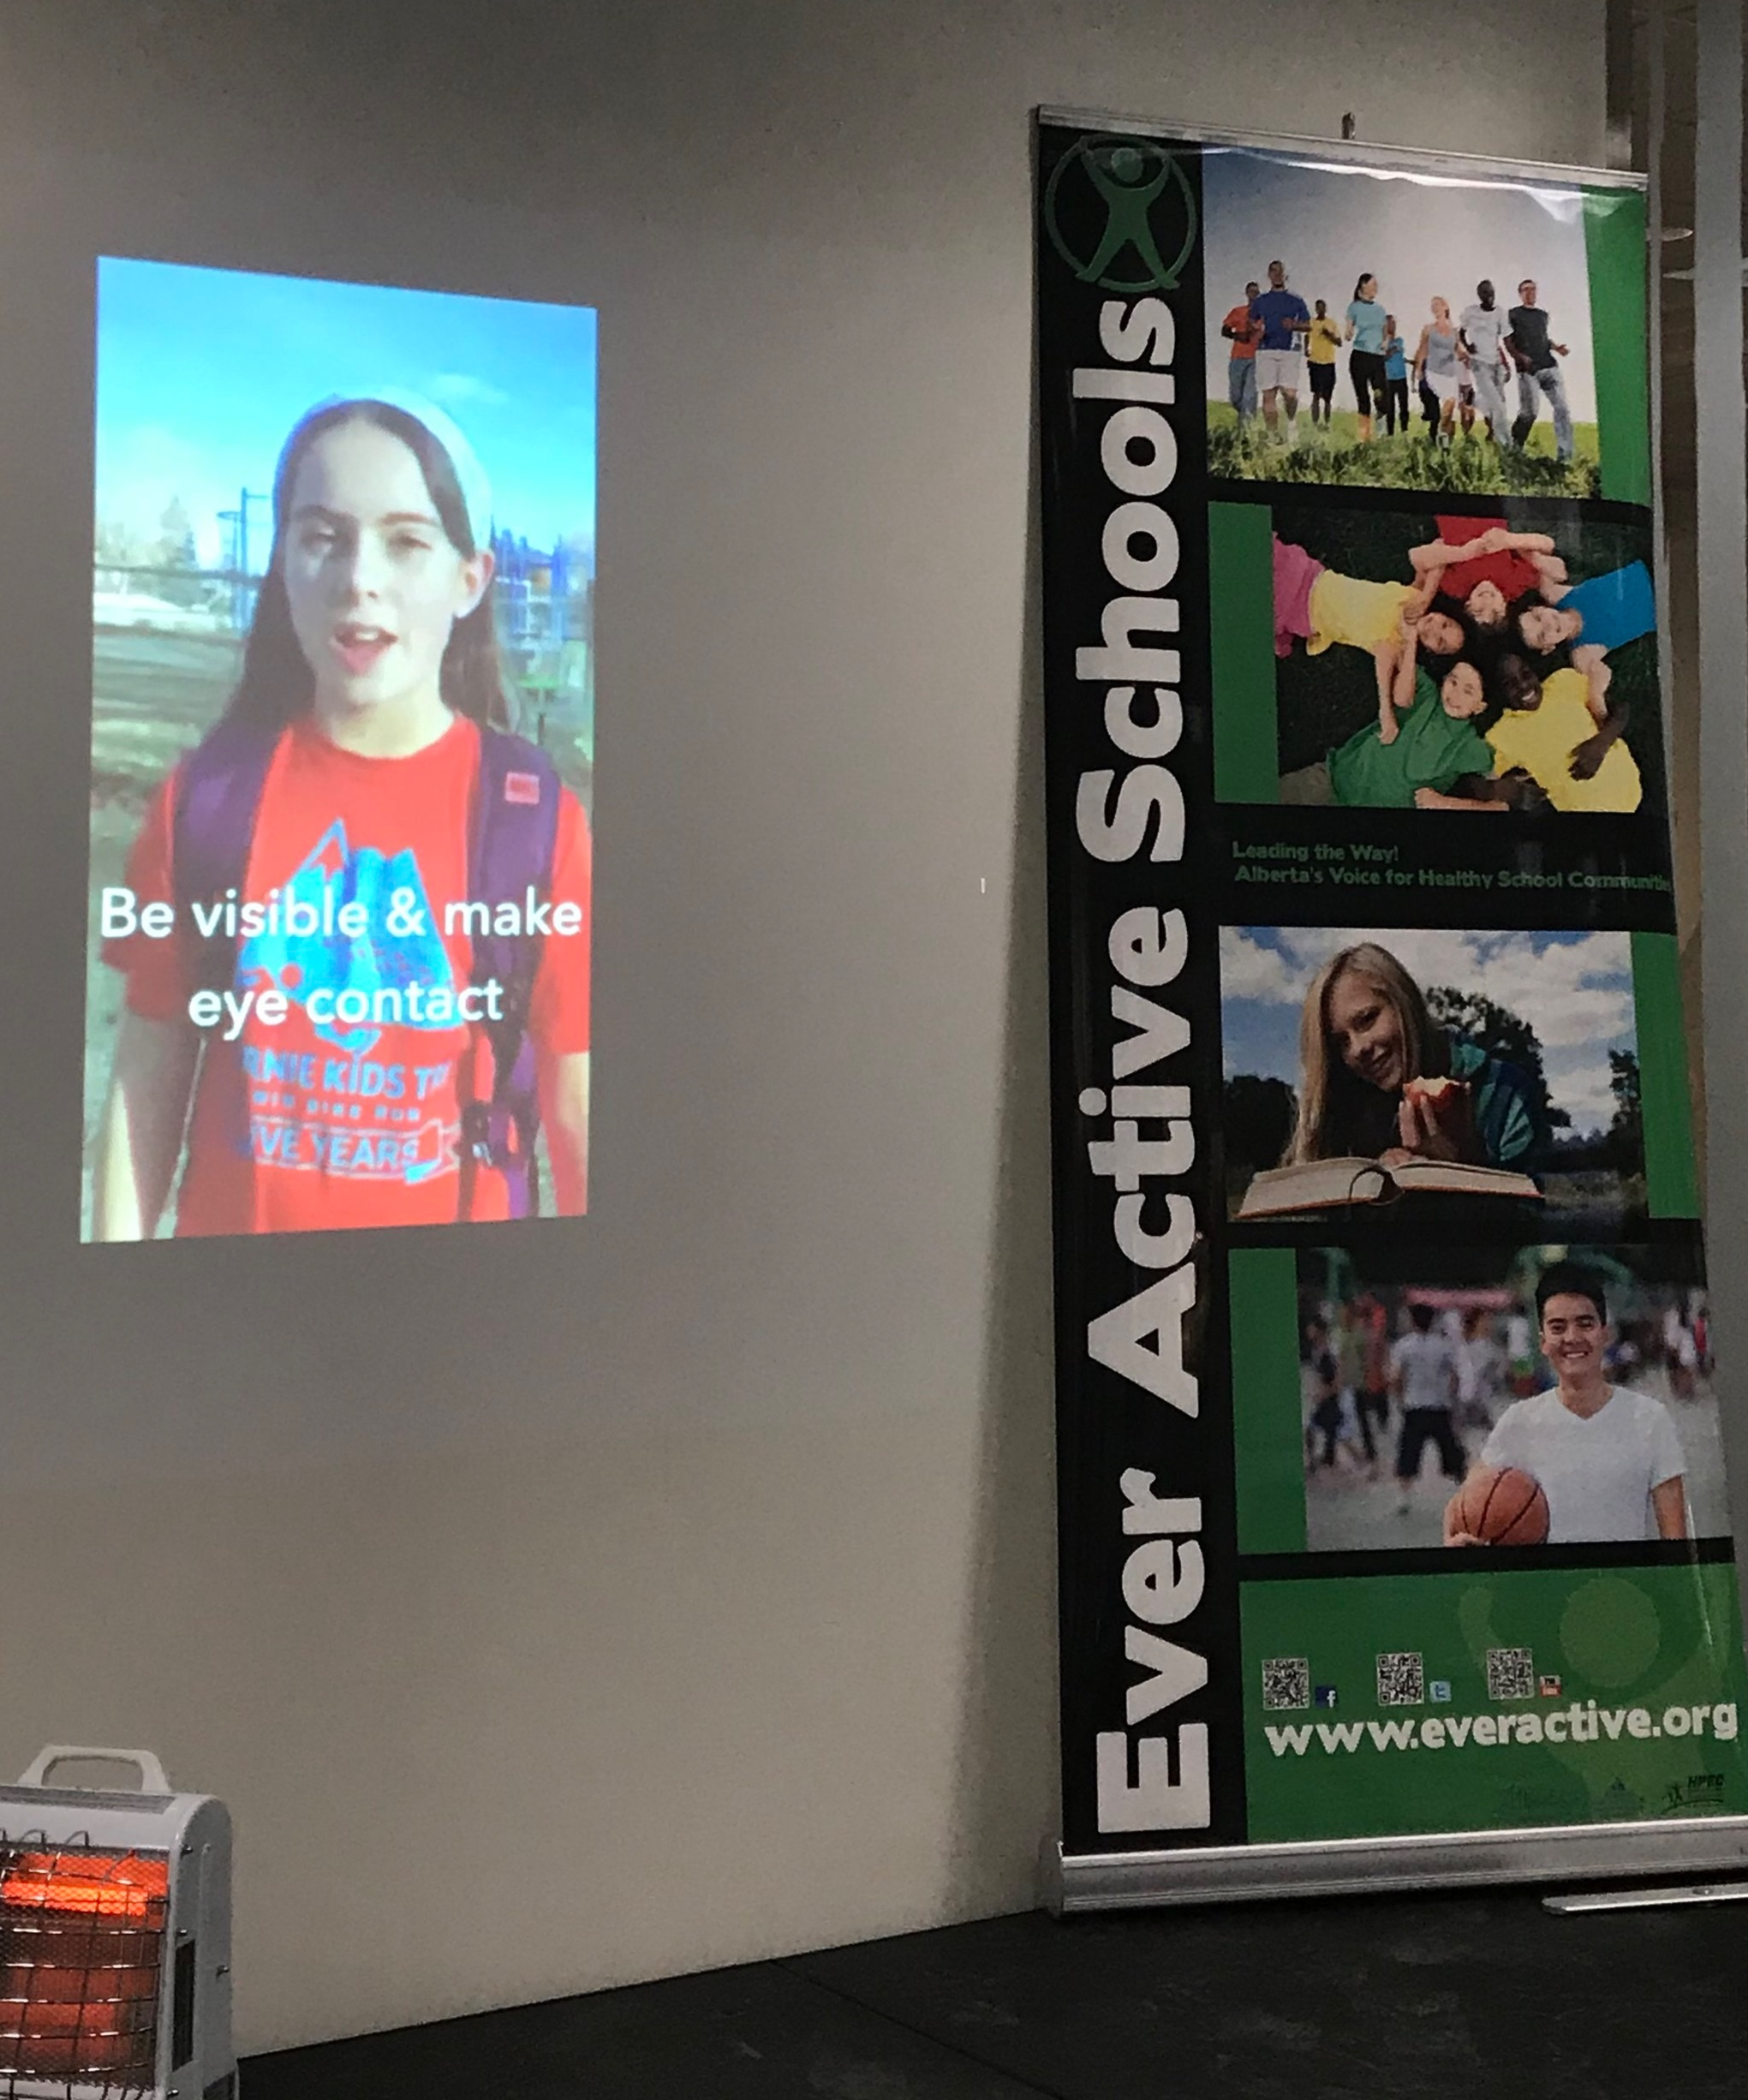 Calgary Teacher's Convention 2019 - One of my soundbites was used at a presentation with Ever Active Schools at the Teacher's Convention. I wonder if my teachers saw me?! I think I'm looking pretty good on the wall, don't you?-#getkidsout Ambassador SophiePhoto credit: Tracey Coutts